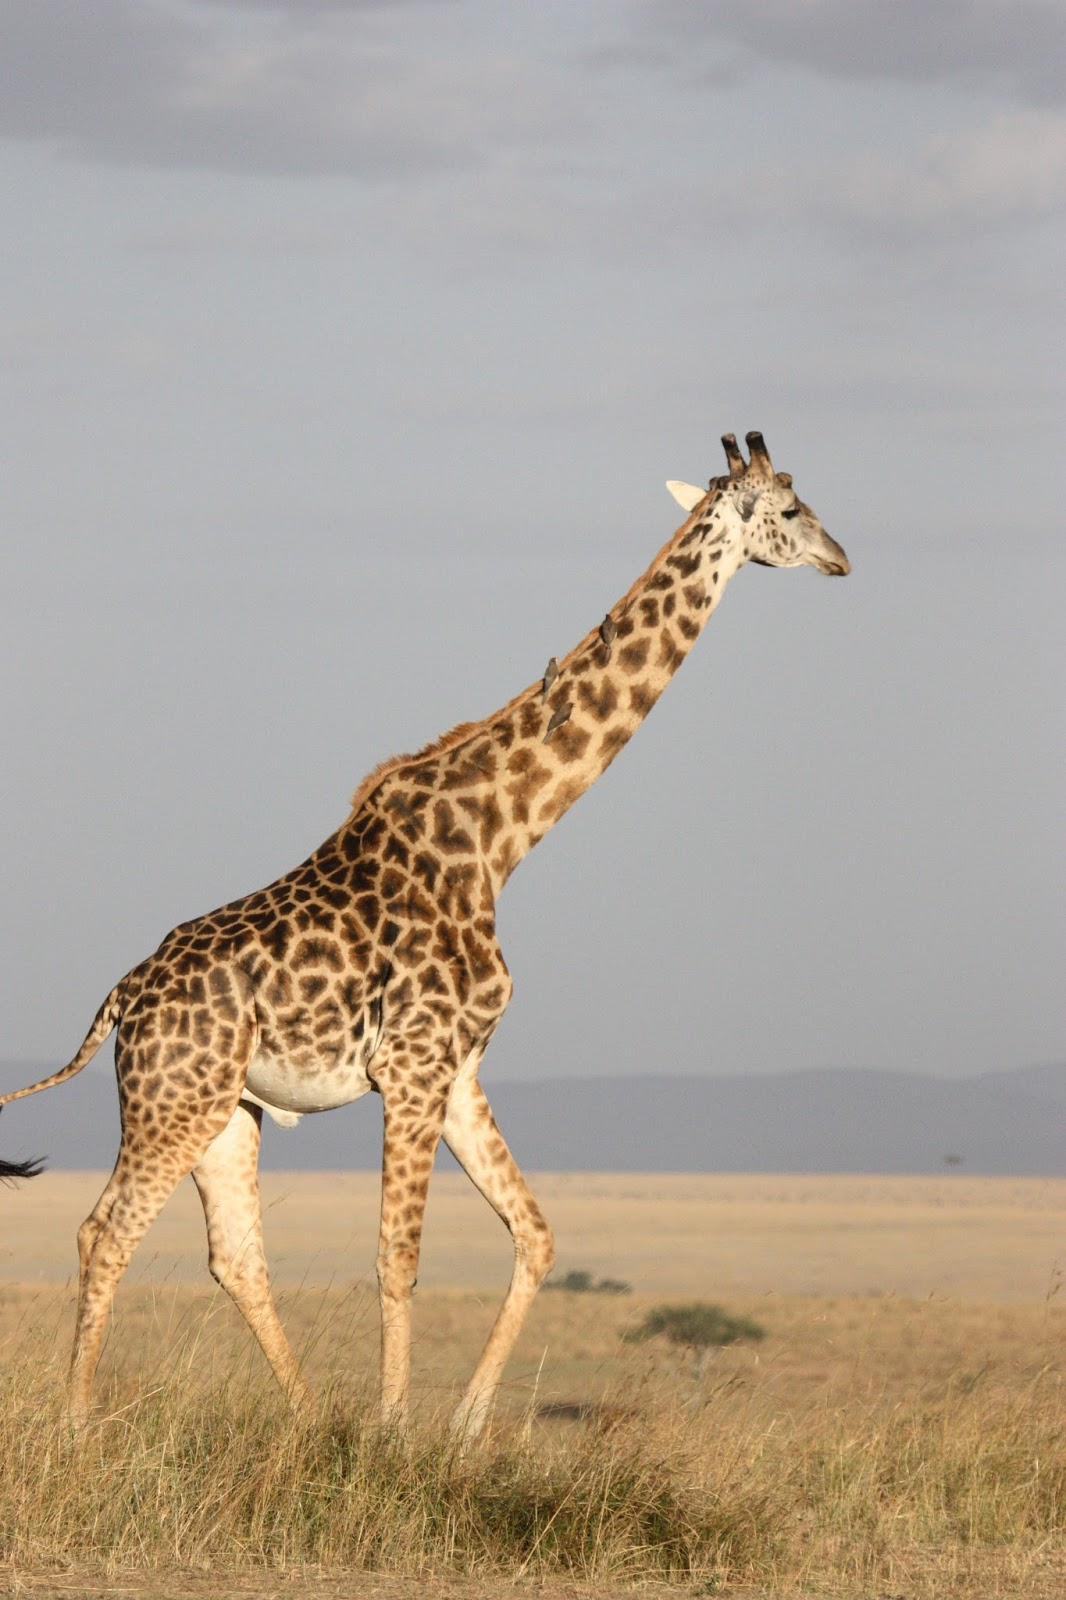 A picture of the tallest animal-The giraffe.